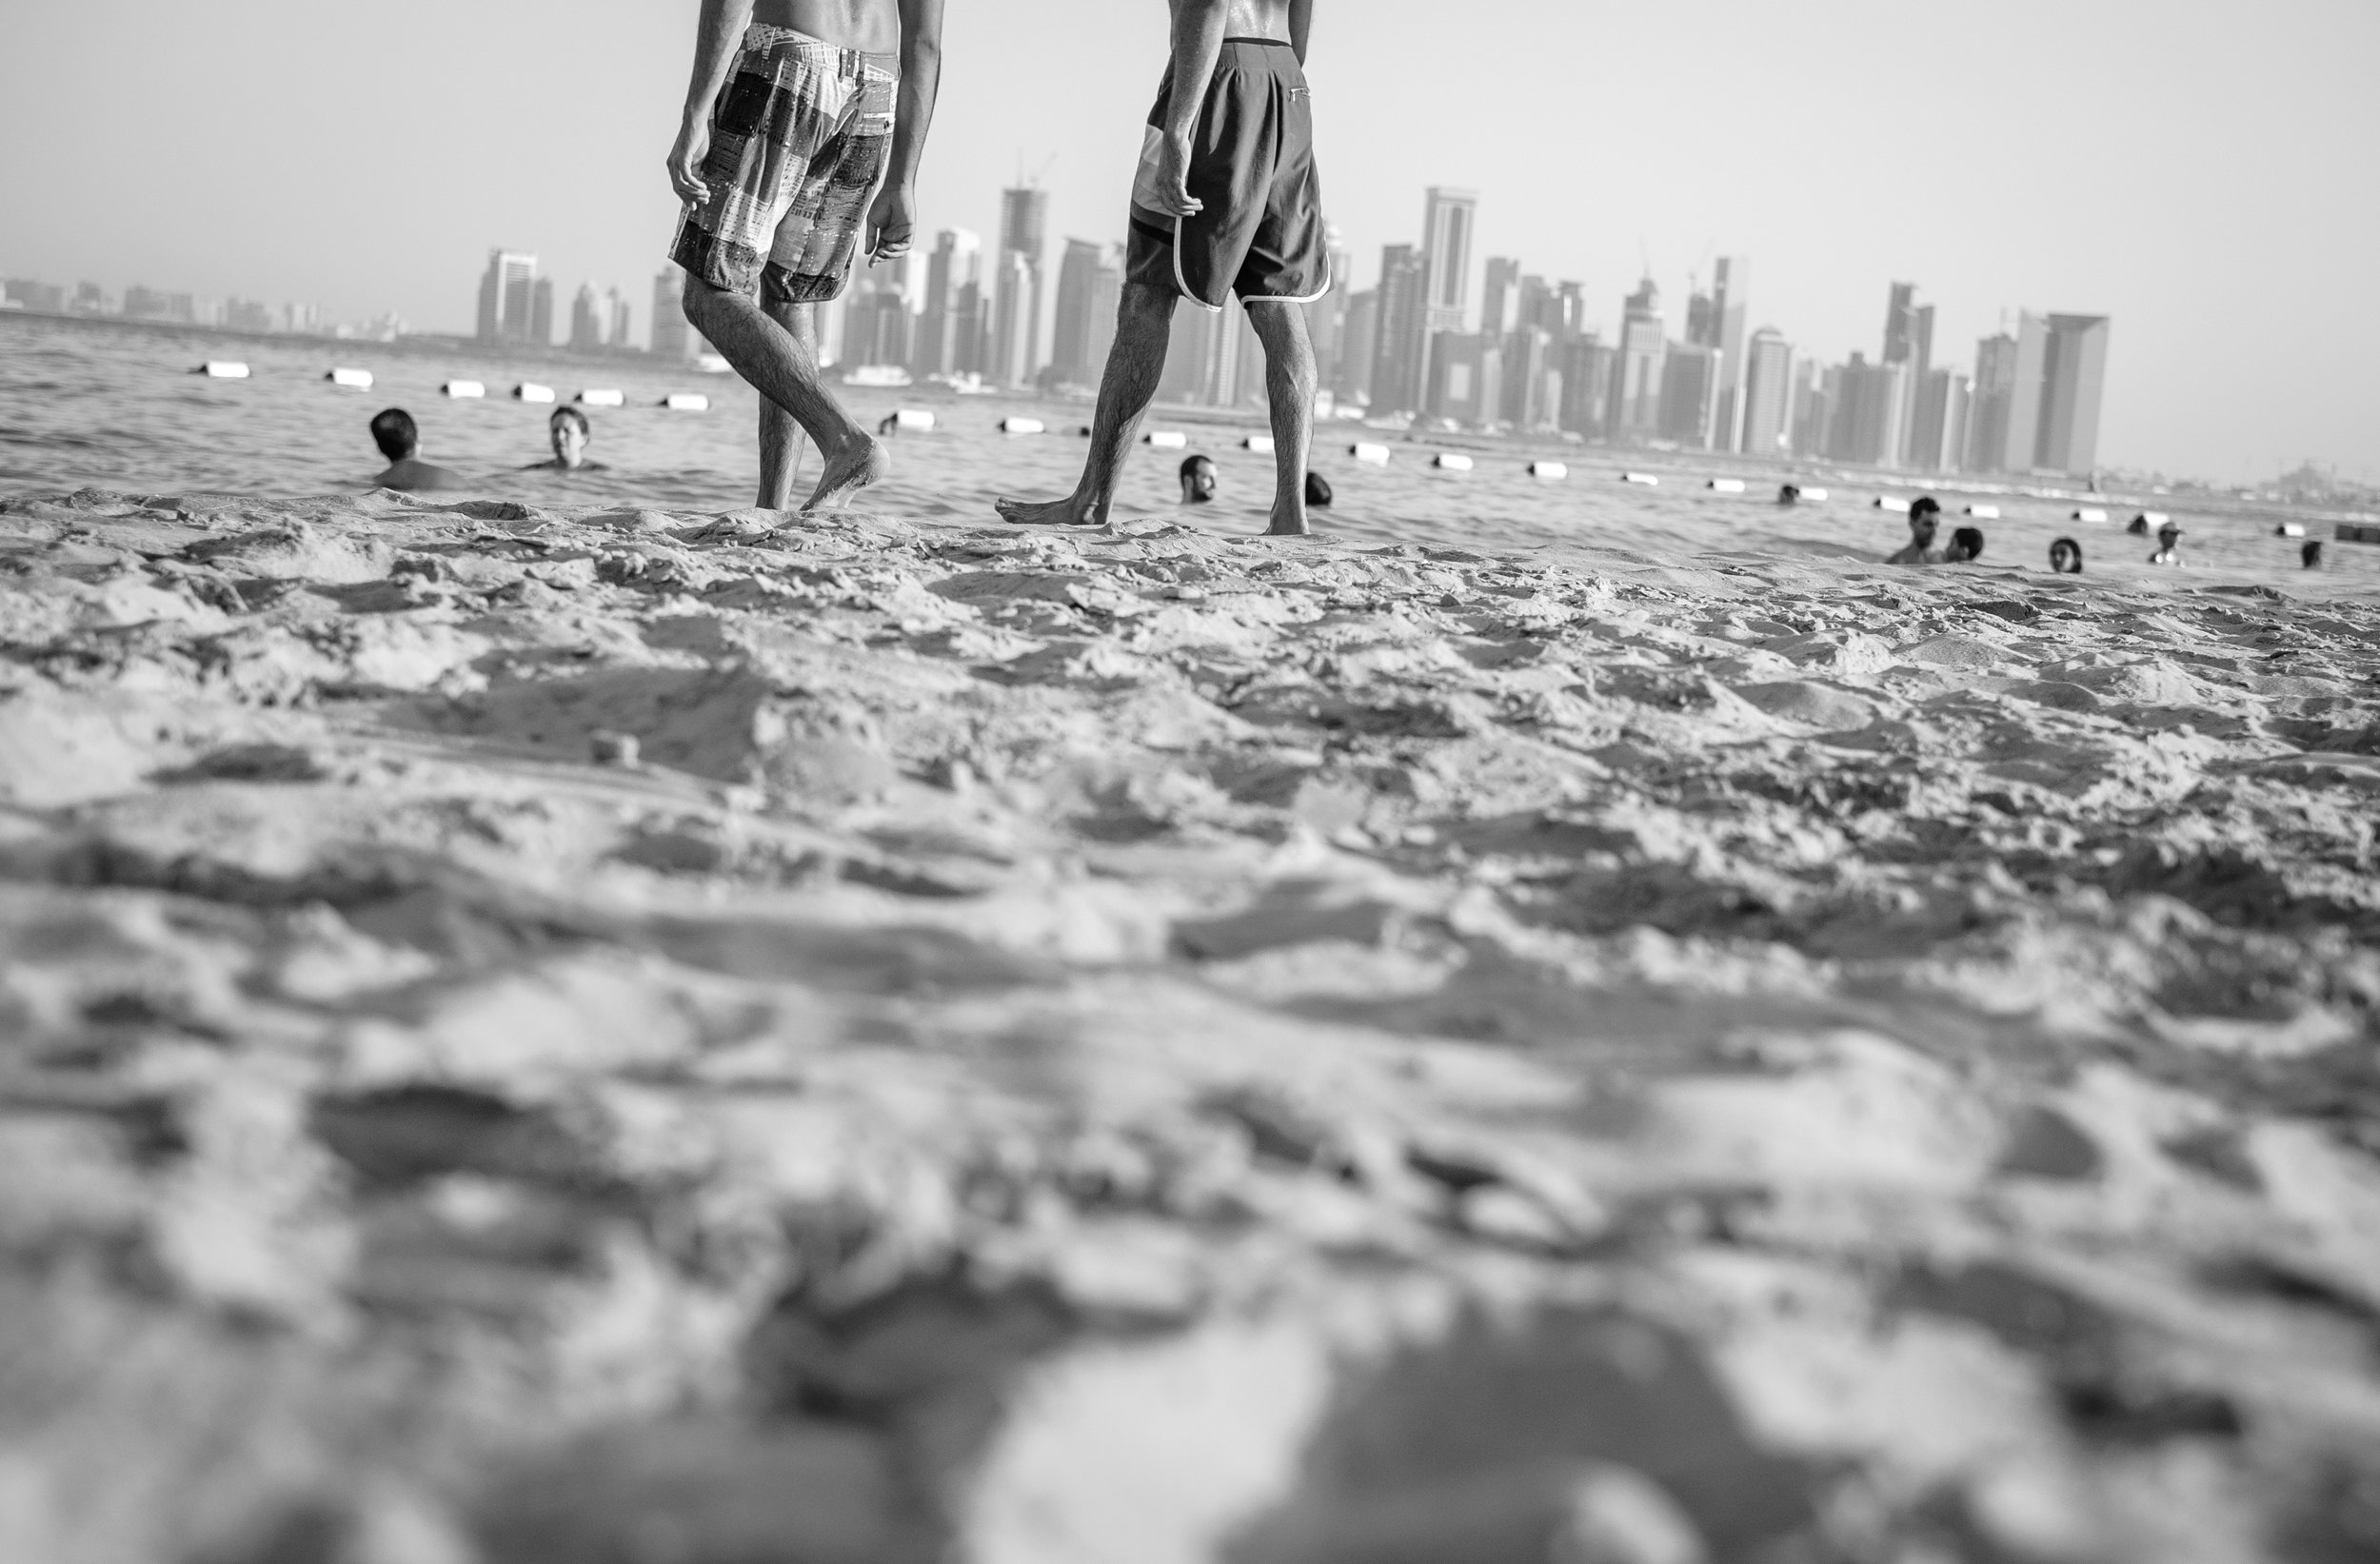 Expats enjoying the sun and sand at Nikki Beach on The Pearl in Doha. The Pearl is an artificial island comprising of luxury residential estates and businesses. It is the first land in Qatar made available for ownership by foreign nationals. The West Bay skyline is seen across the bay.